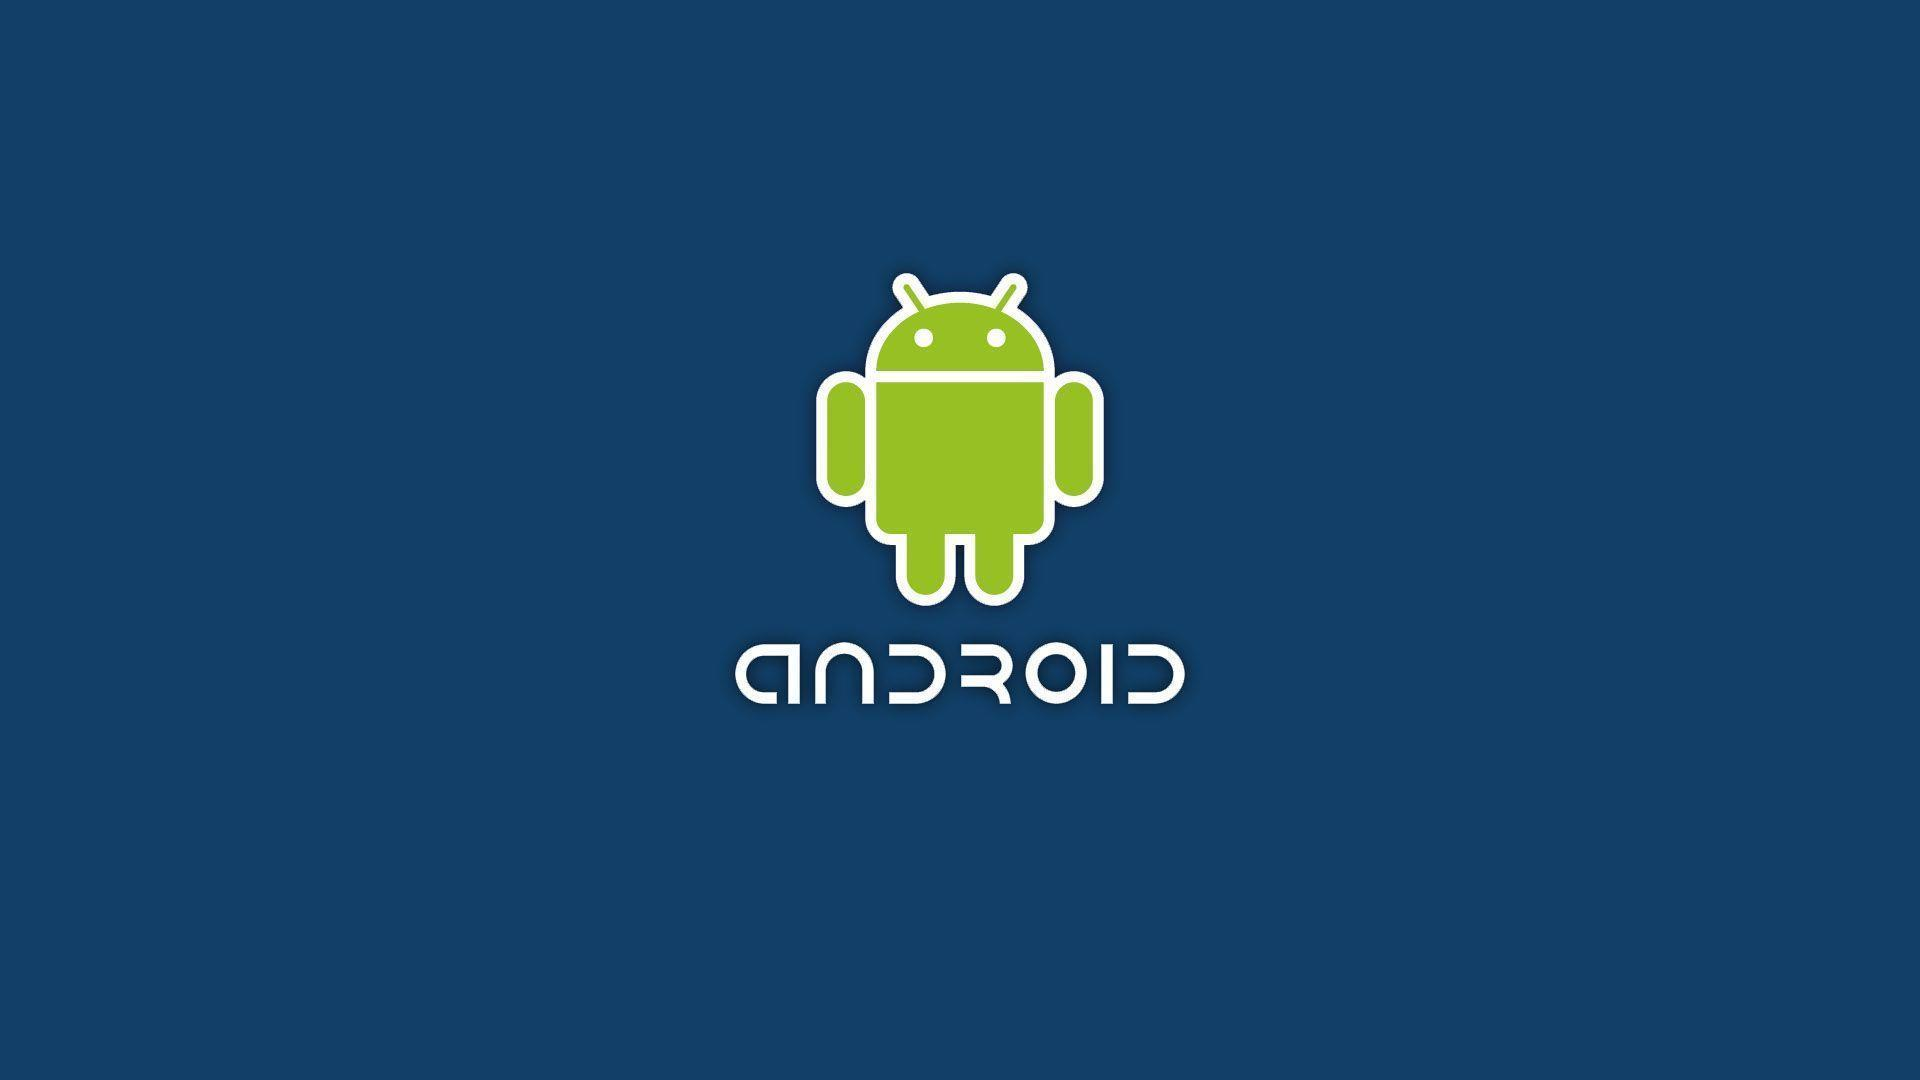 Wallpapers For > Android Logo Wallpapers For Mobile